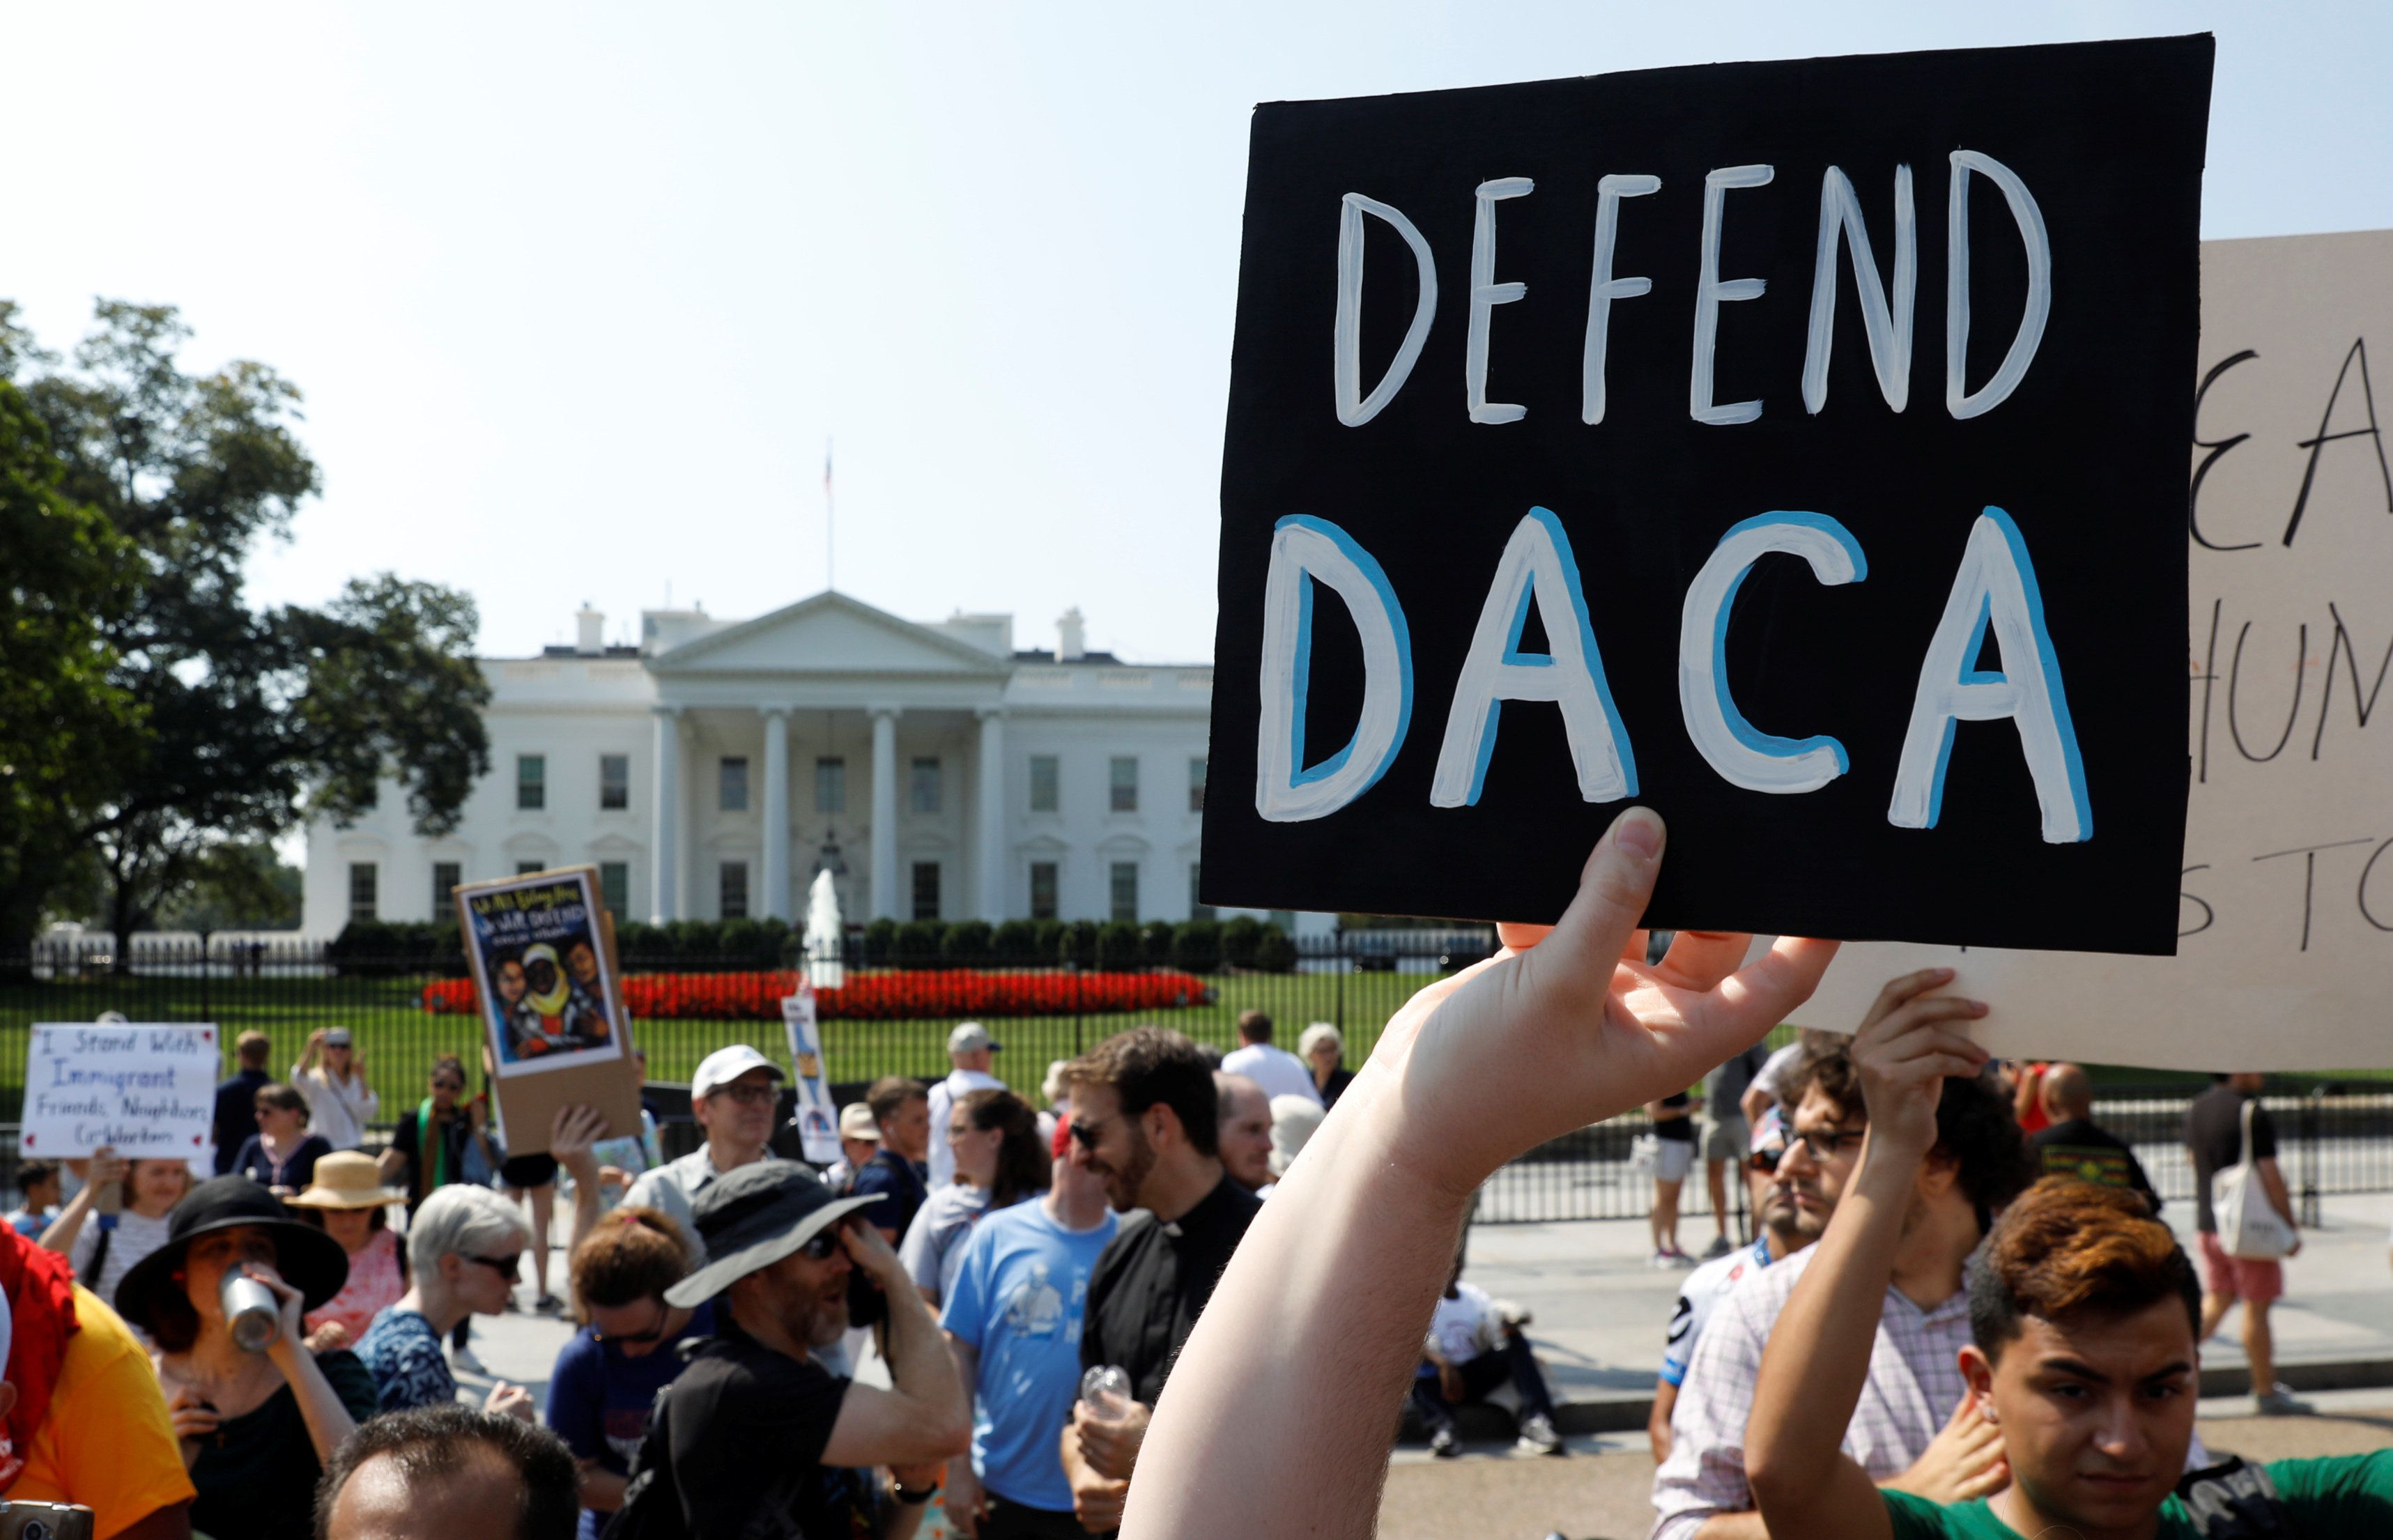 Republicans can't avoid Trump's wall promises in DACA talks